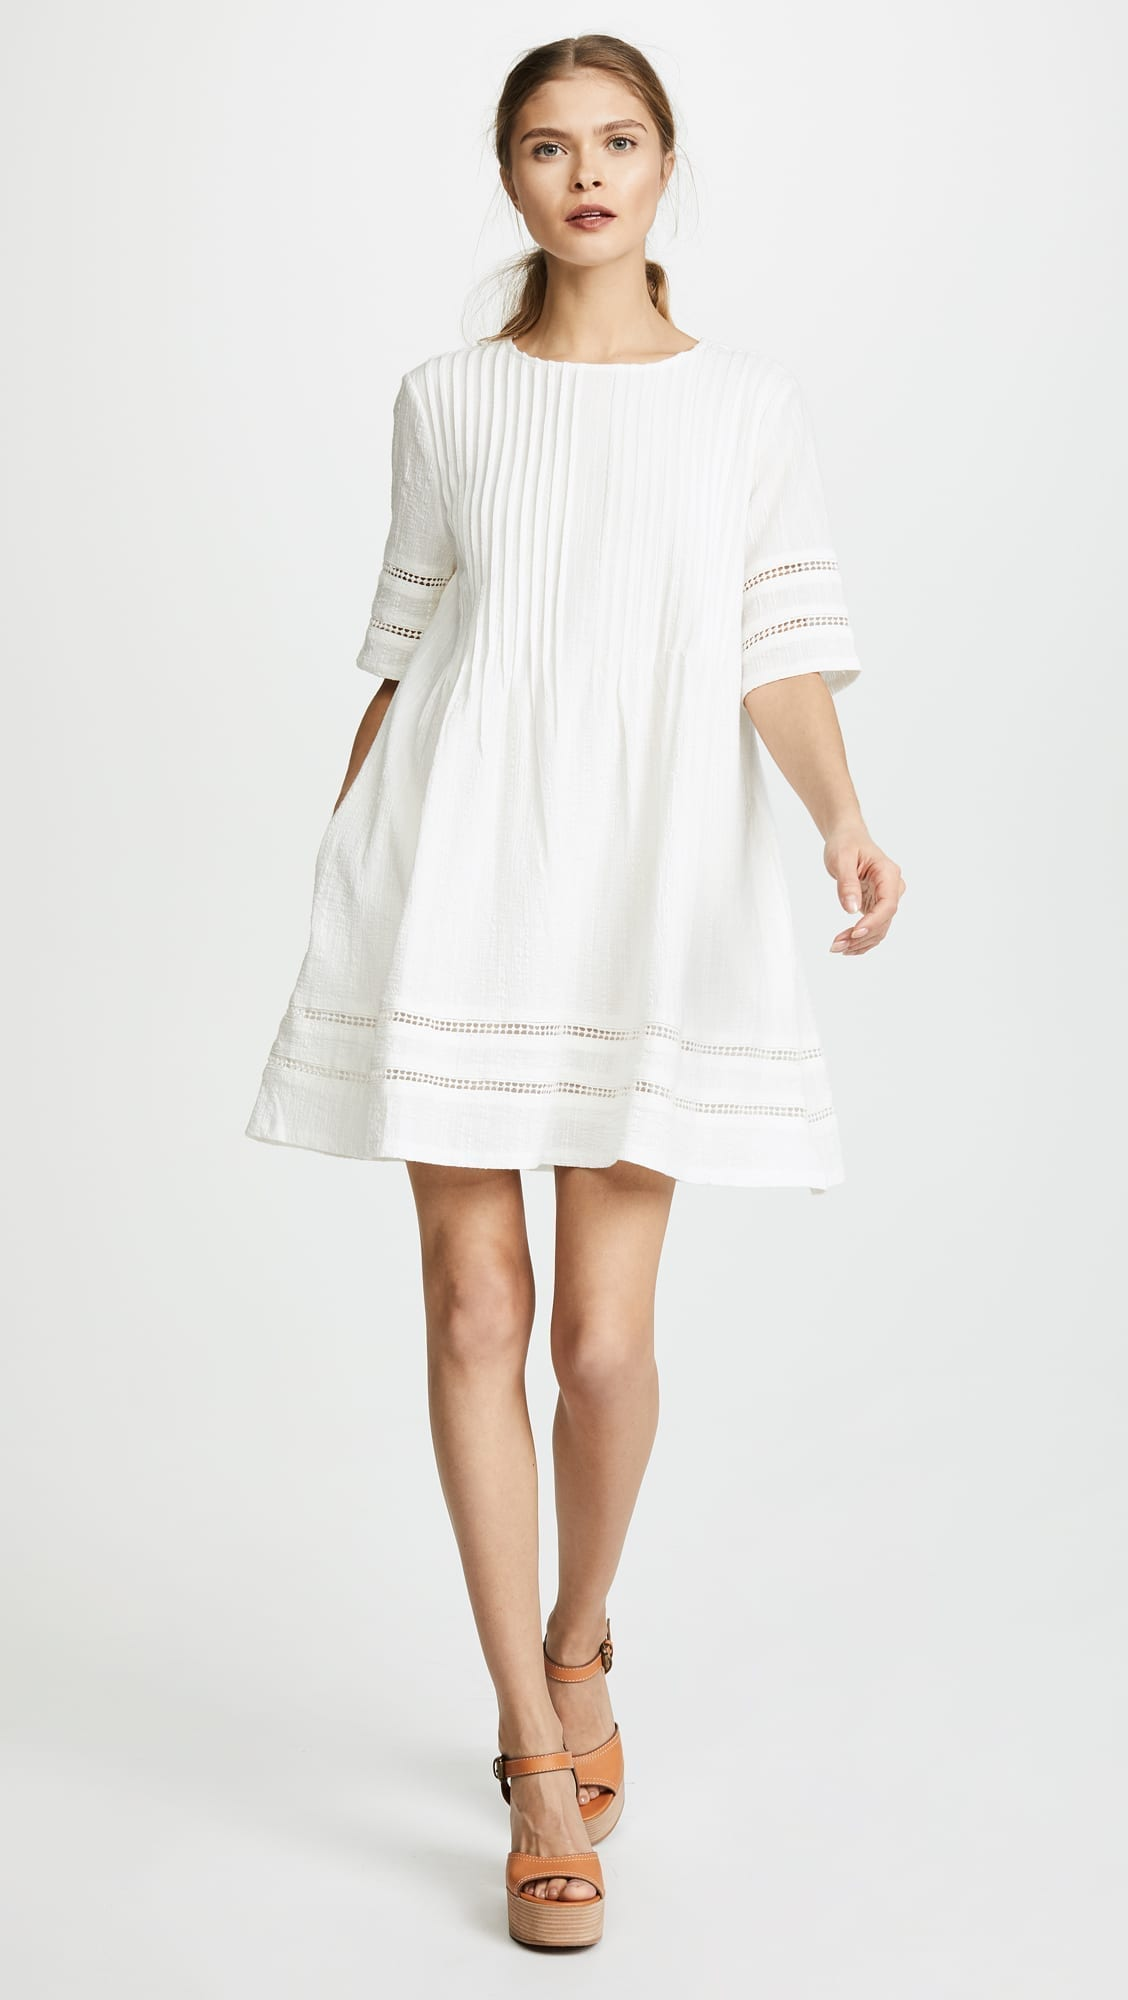 KNOT SISTERS Phillips White Dress